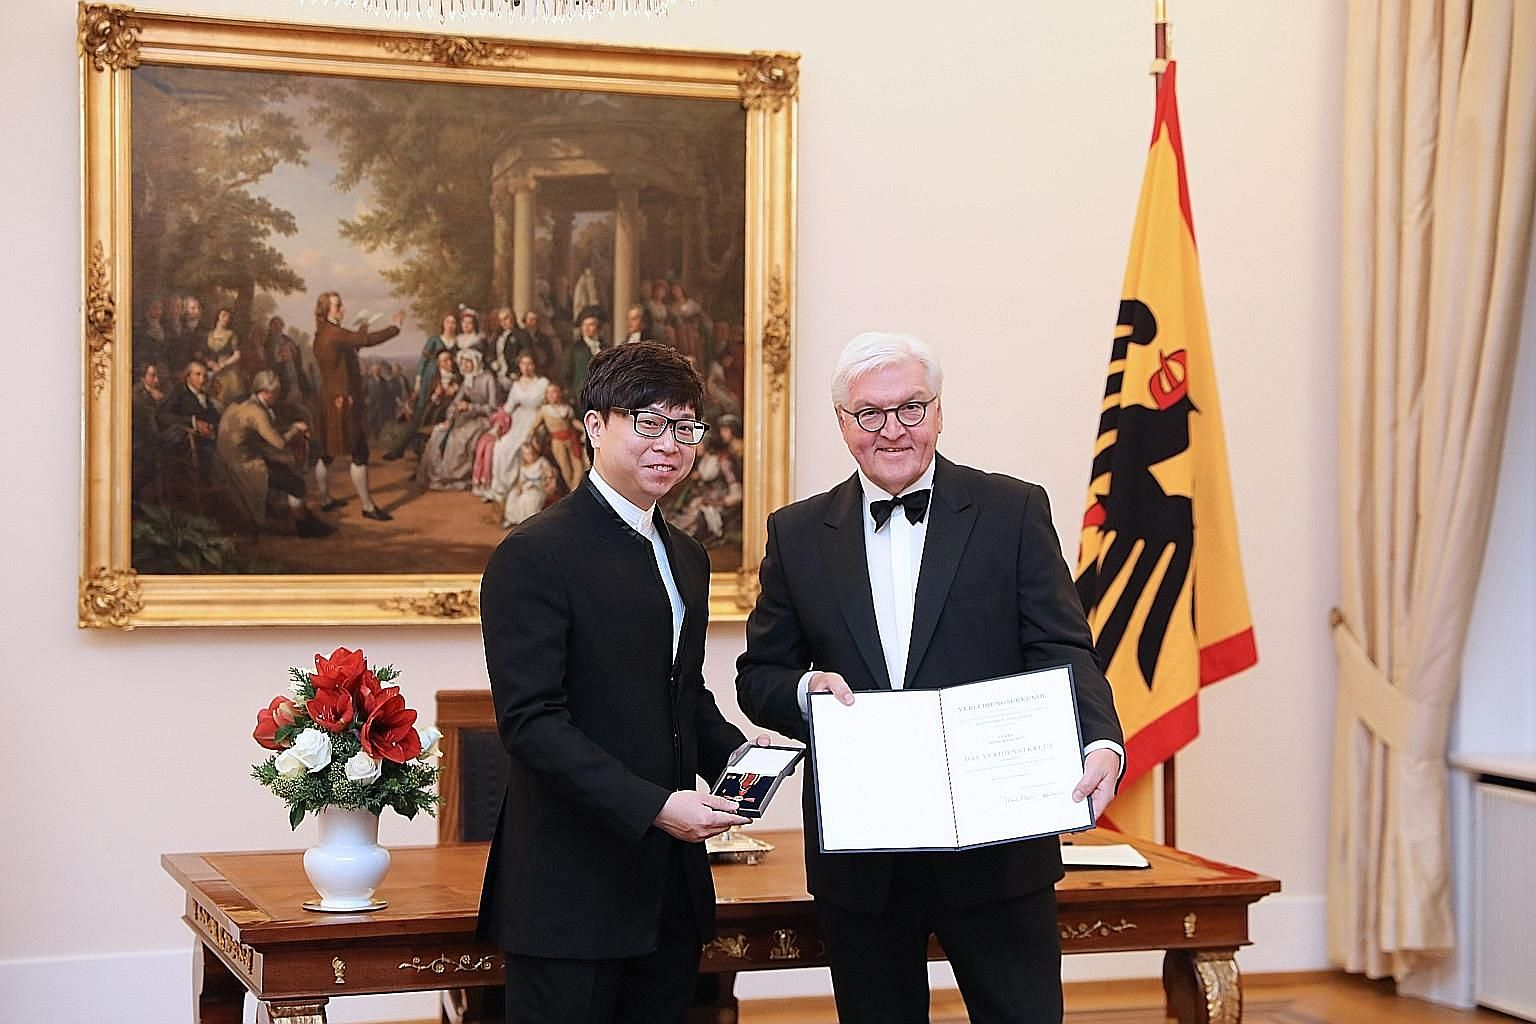 Singaporean conductor Wong Kah Chun receiving the Order of Merit of the Federal Republic of Germany from German President Frank-Walter Steinmeier at a state banquet on Tuesday.